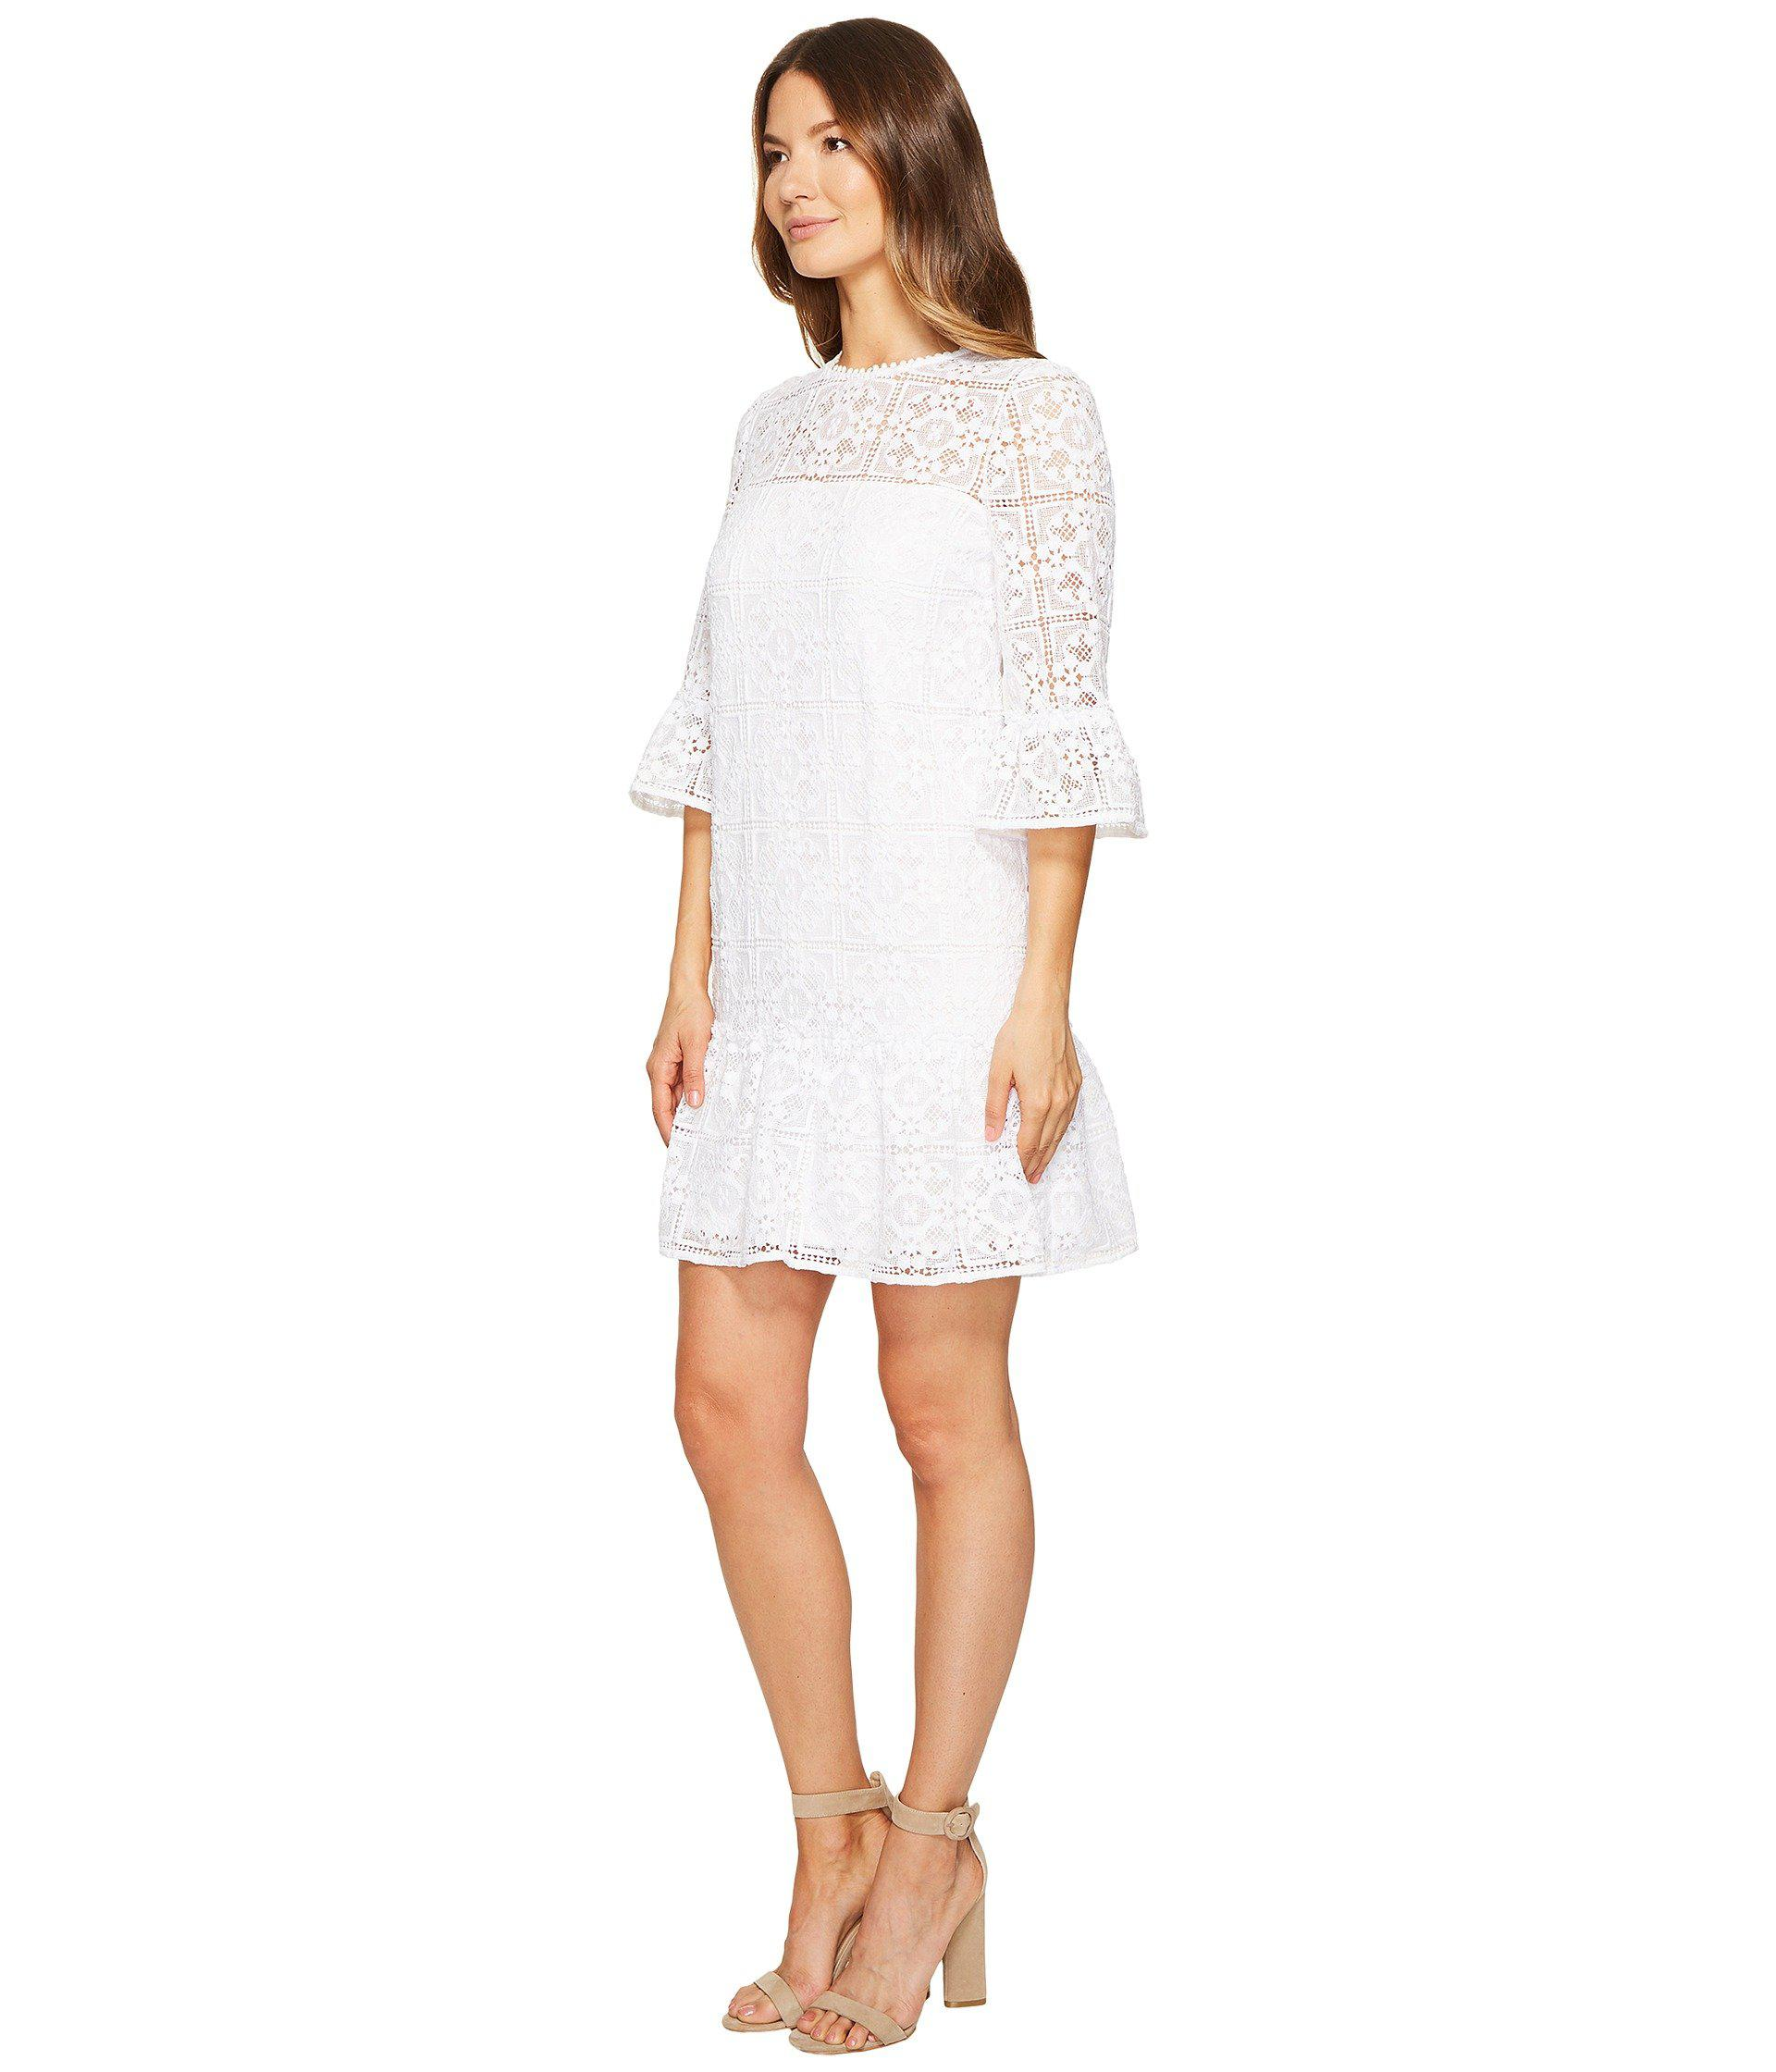 ac1688eb30aa Lyst - Kate Spade Lace Flounce Shift Dress in White